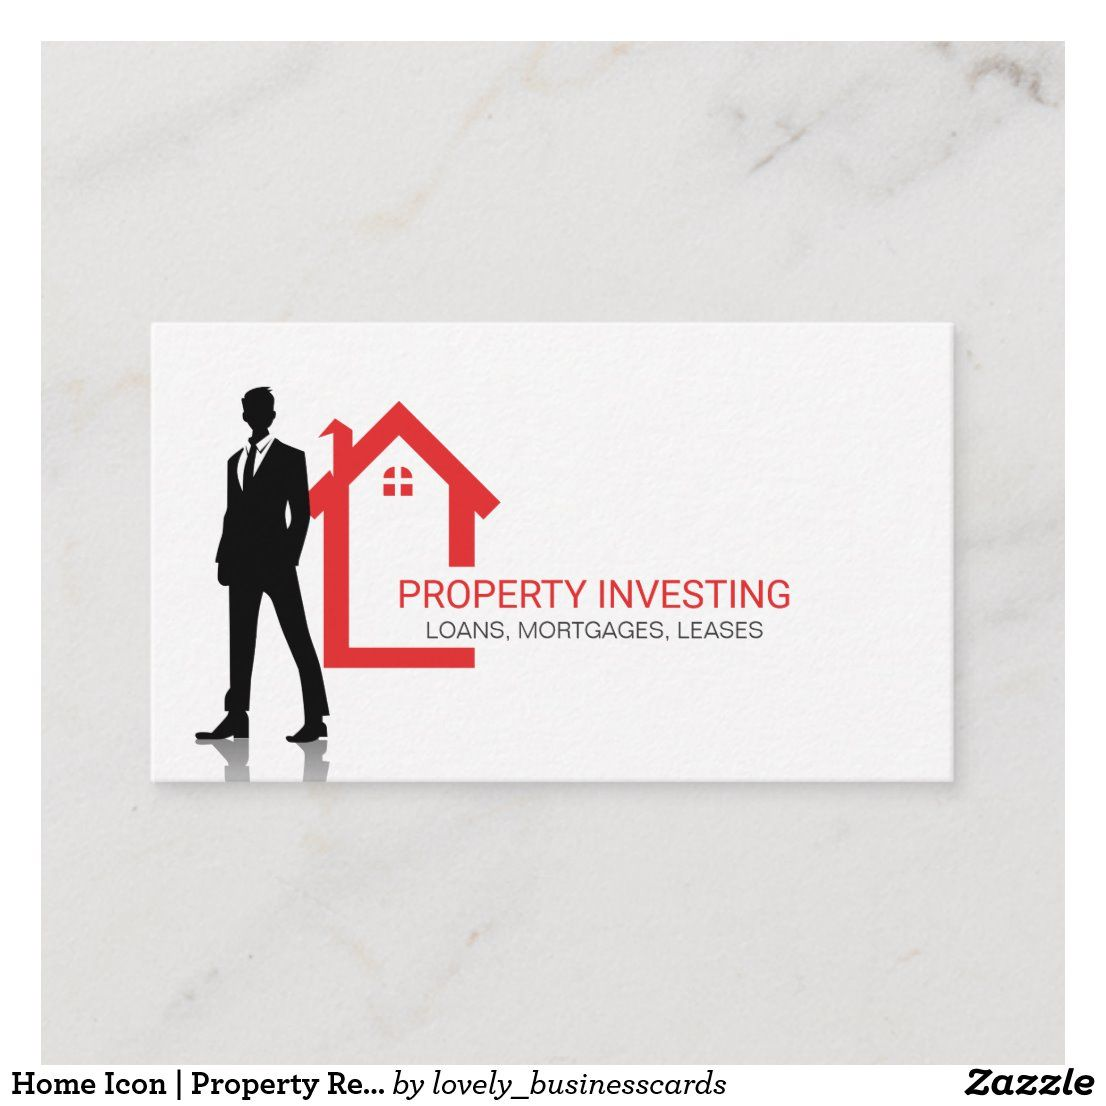 Home Icon Property Real Estate Business Card Zazzle Com In 2020 Real Estate Business Cards Real Estate Business Home Icon